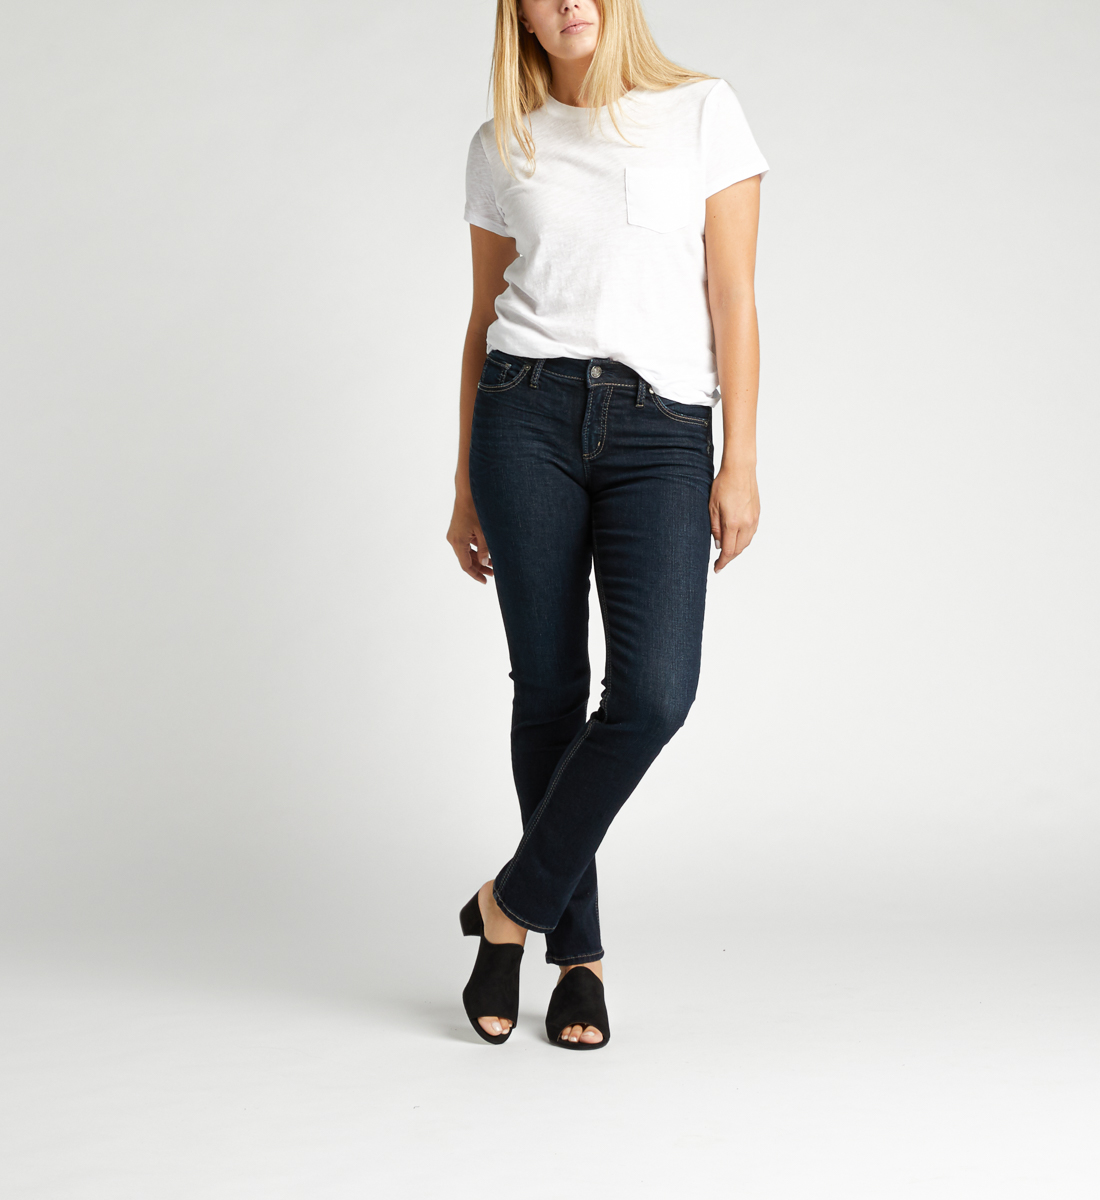 Avery High Rise Straight Leg Jeans Alt Image 1